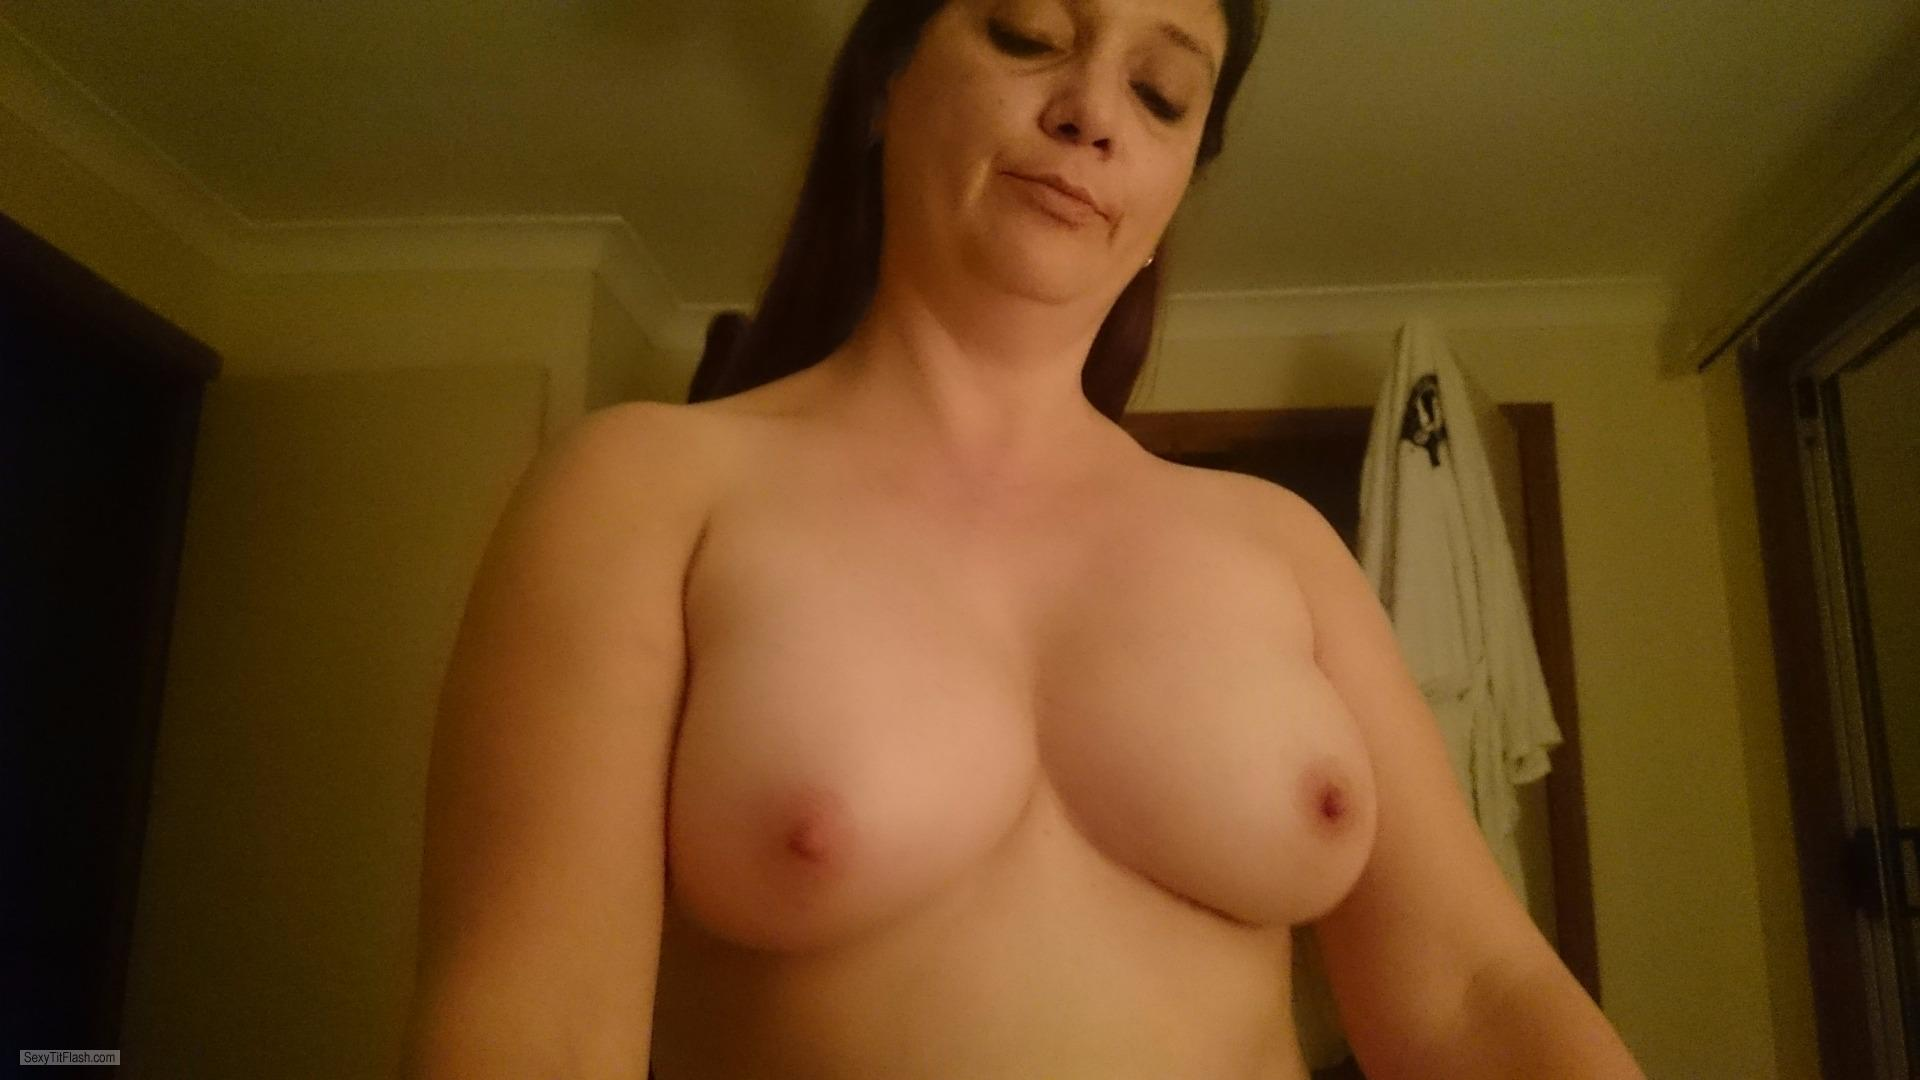 Medium Tits Of My Wife Topless Selfie by 46yo Mature